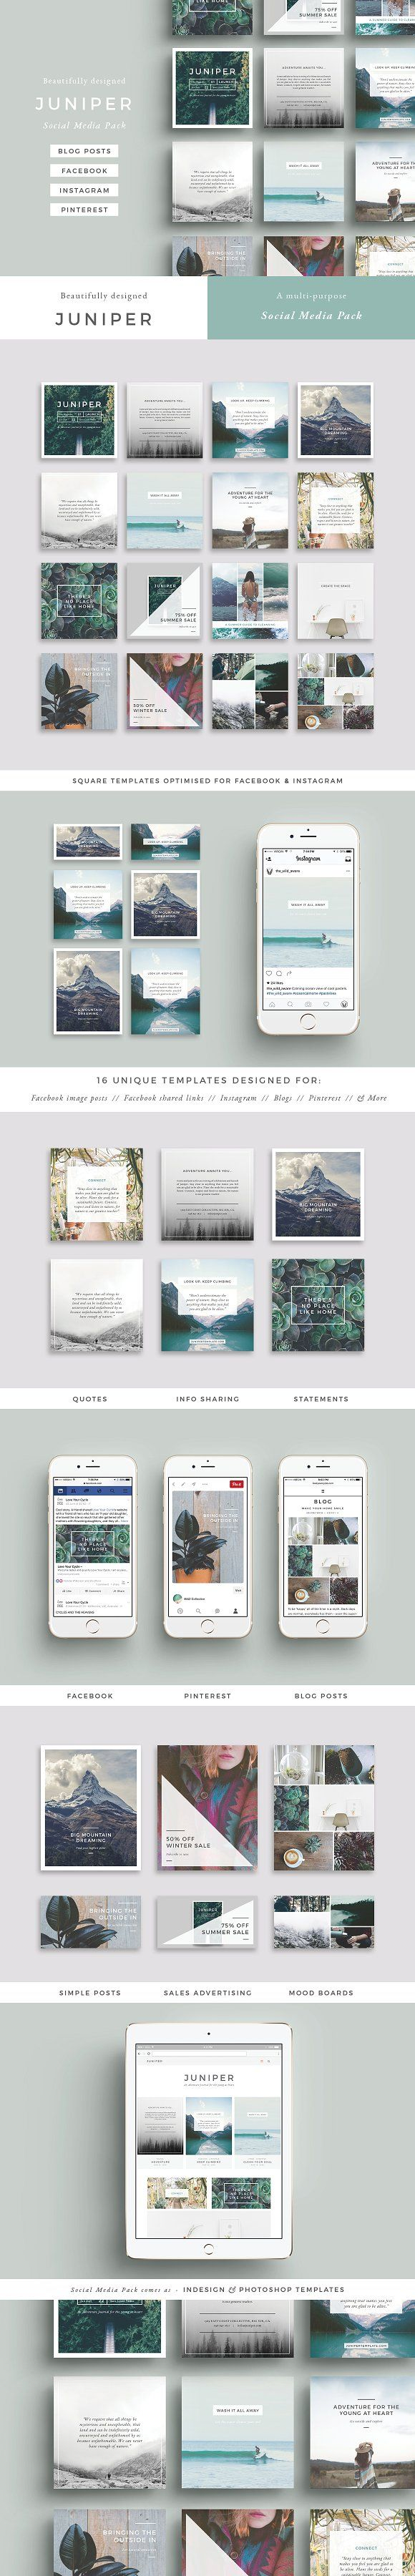 J U N I P E R Social Media Pack by 46&2 Collective on @creativemarket